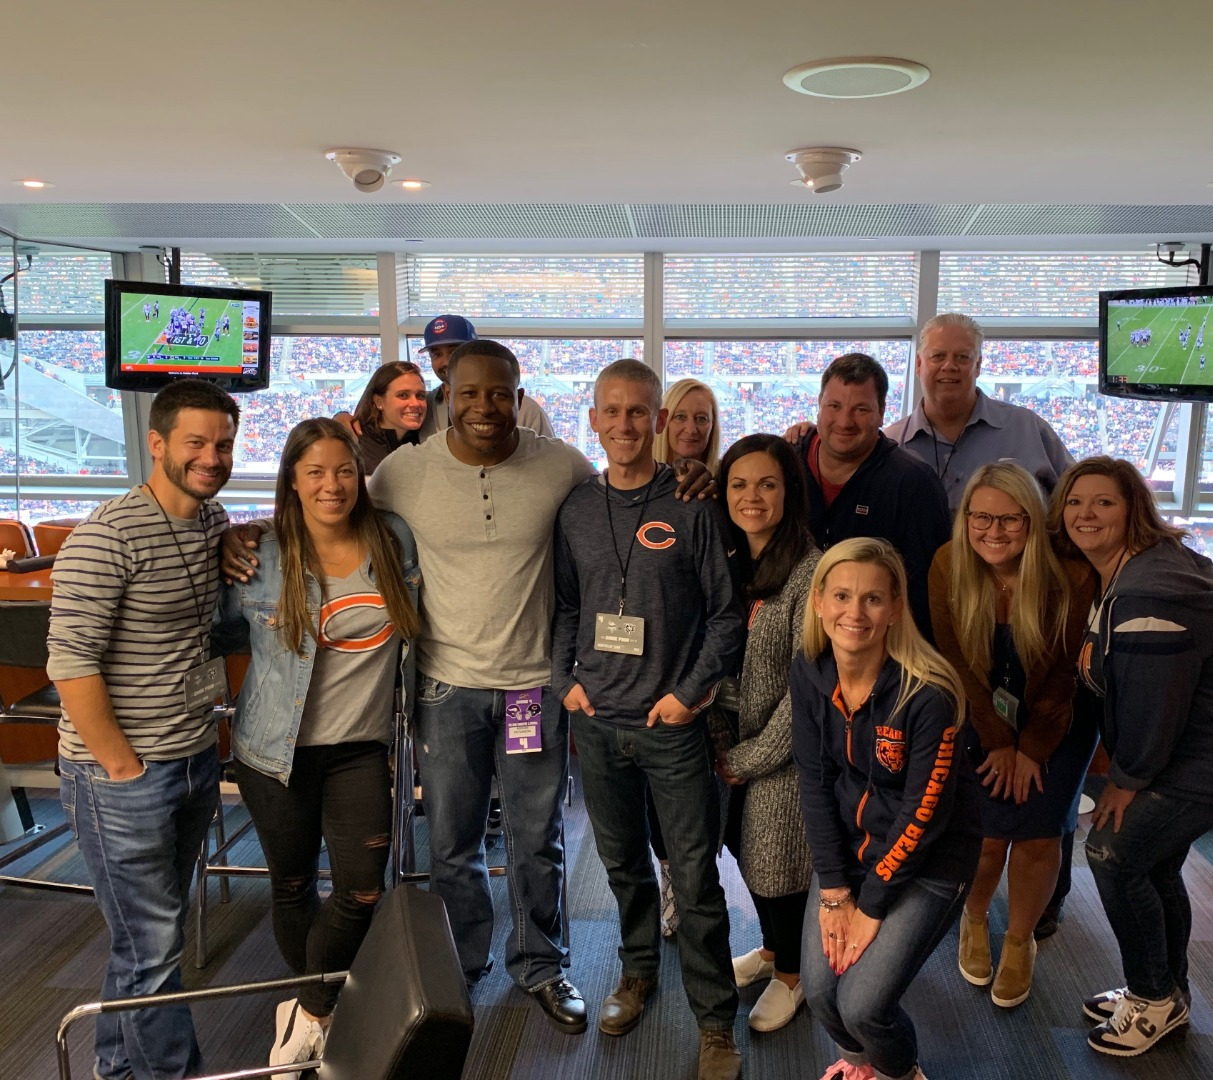 Hanging with Adrian Peterson at Bear's game 09/29/19